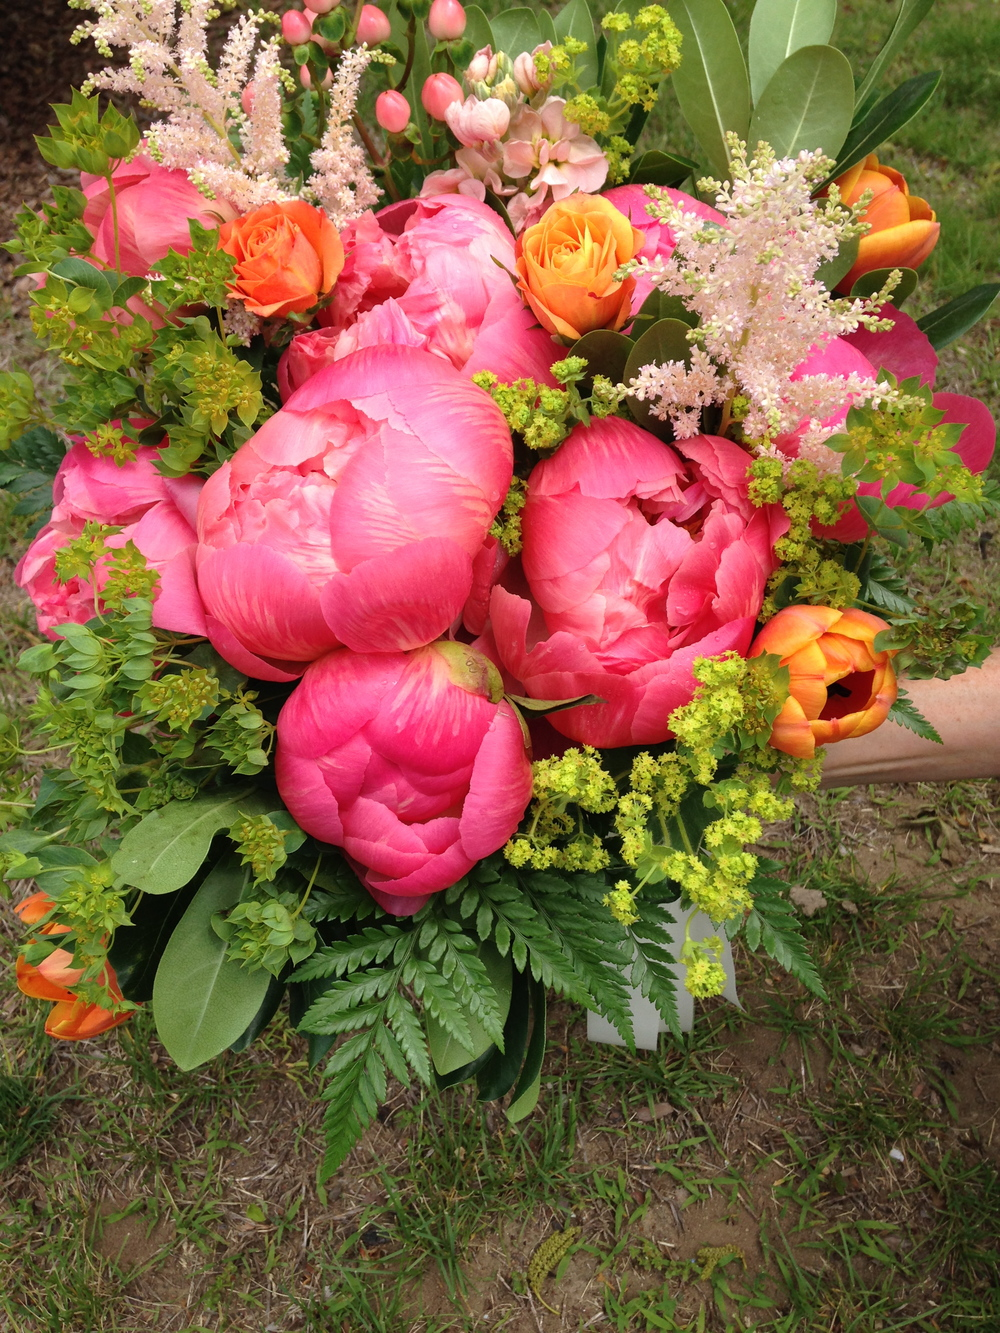 Coral peonies, vibrant tulips, and soft astilbe make a smashing bouquet.